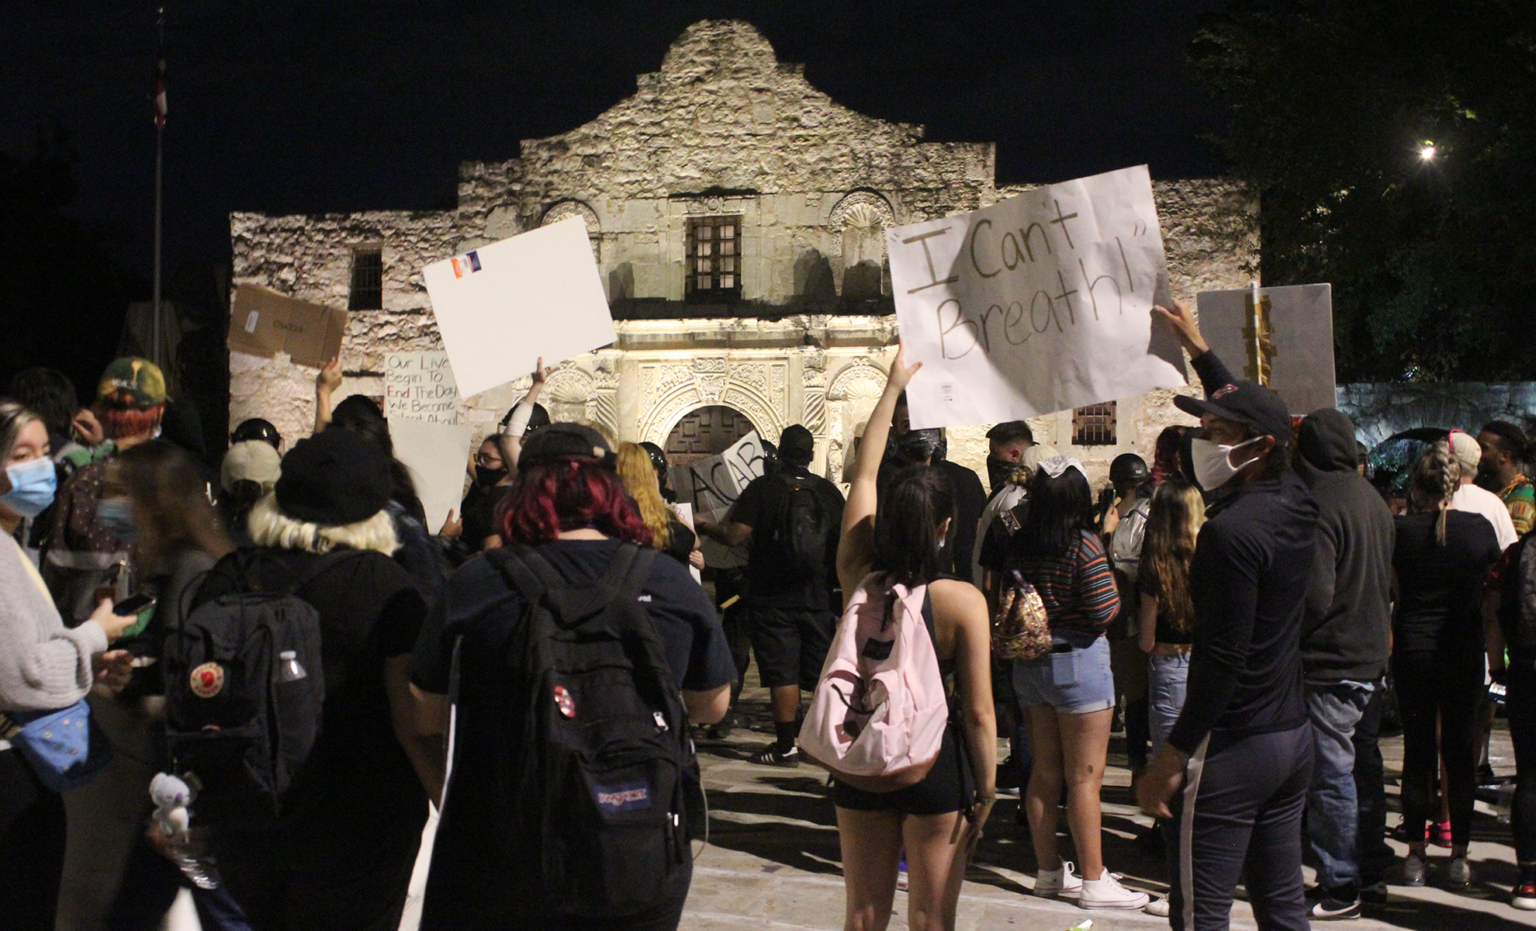 Protesters outside the Alamo in San Antonio in early June 2020.